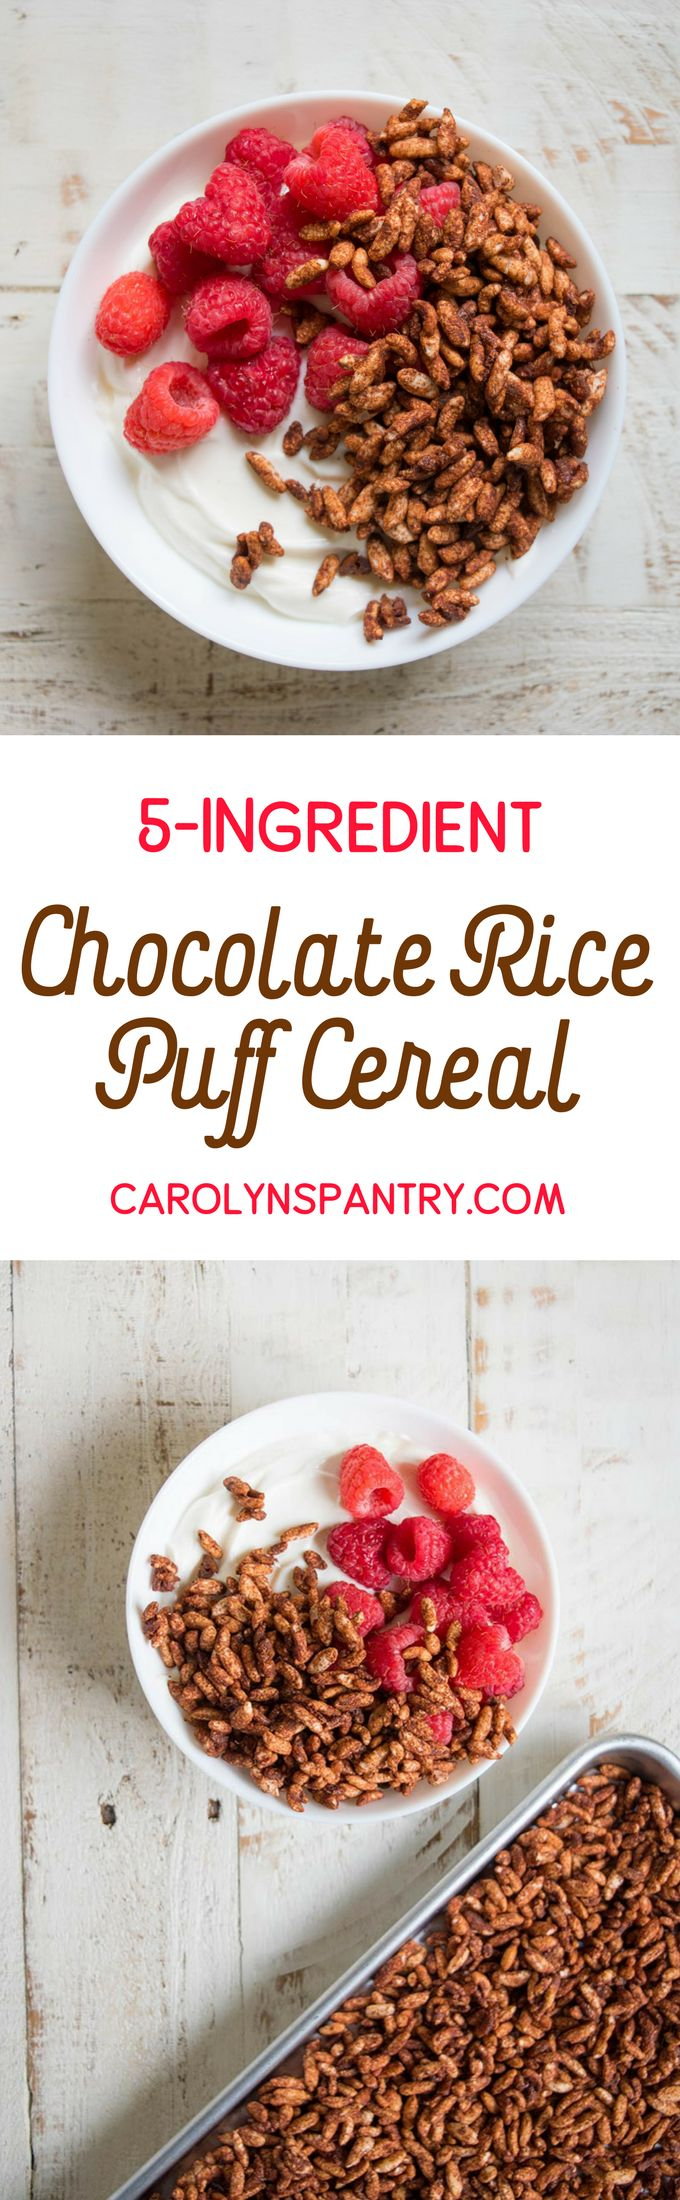 I'm completely obsessed with this easy 5-Ingredient Chocolate Rice Puff Cereal. It's loaded with superfoods like cacao powder and coconut oil, is 100% plant-based, and also gluten-free. This recipe is fantastic when you want something sweet, but are in the mood for a snack that's a bit lighter than granola.